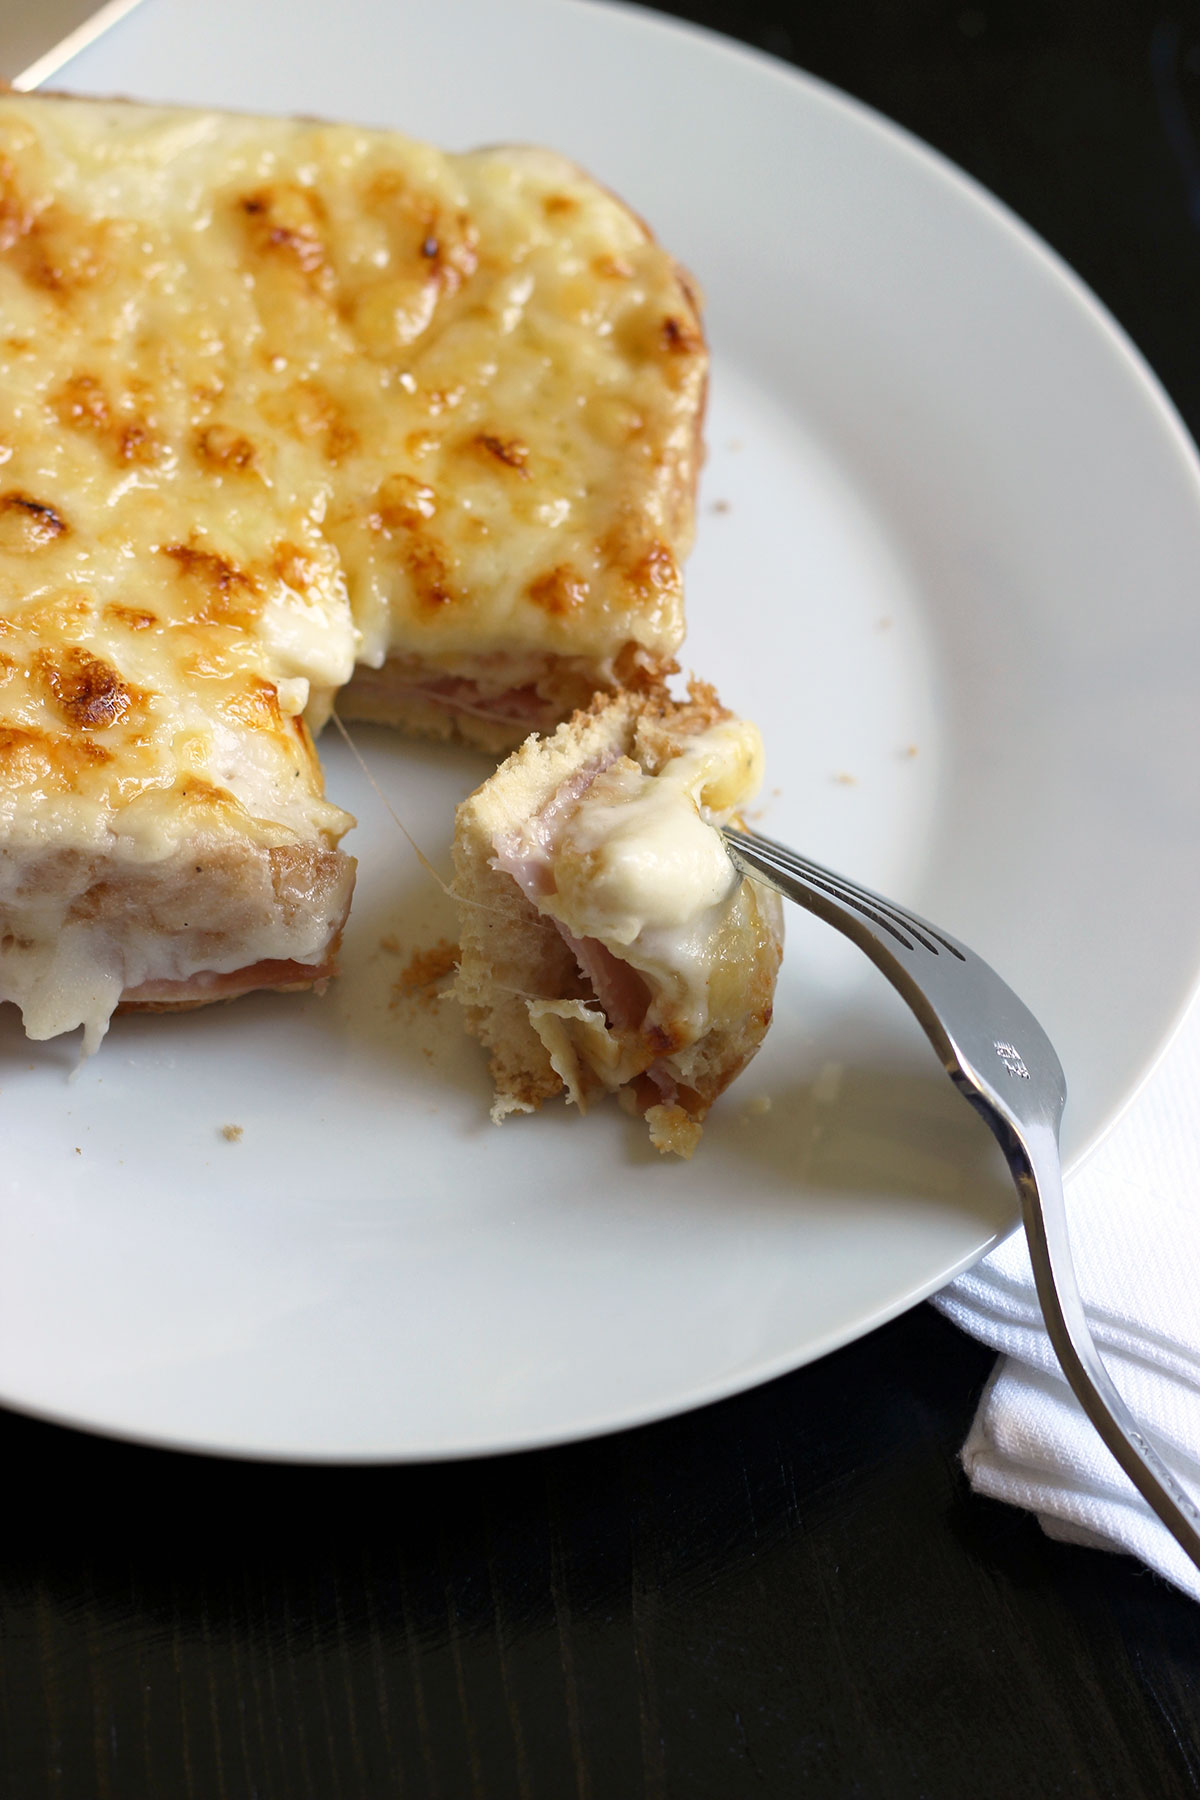 sandwich on plate with bite of croque monsieur with bechamel on fork.